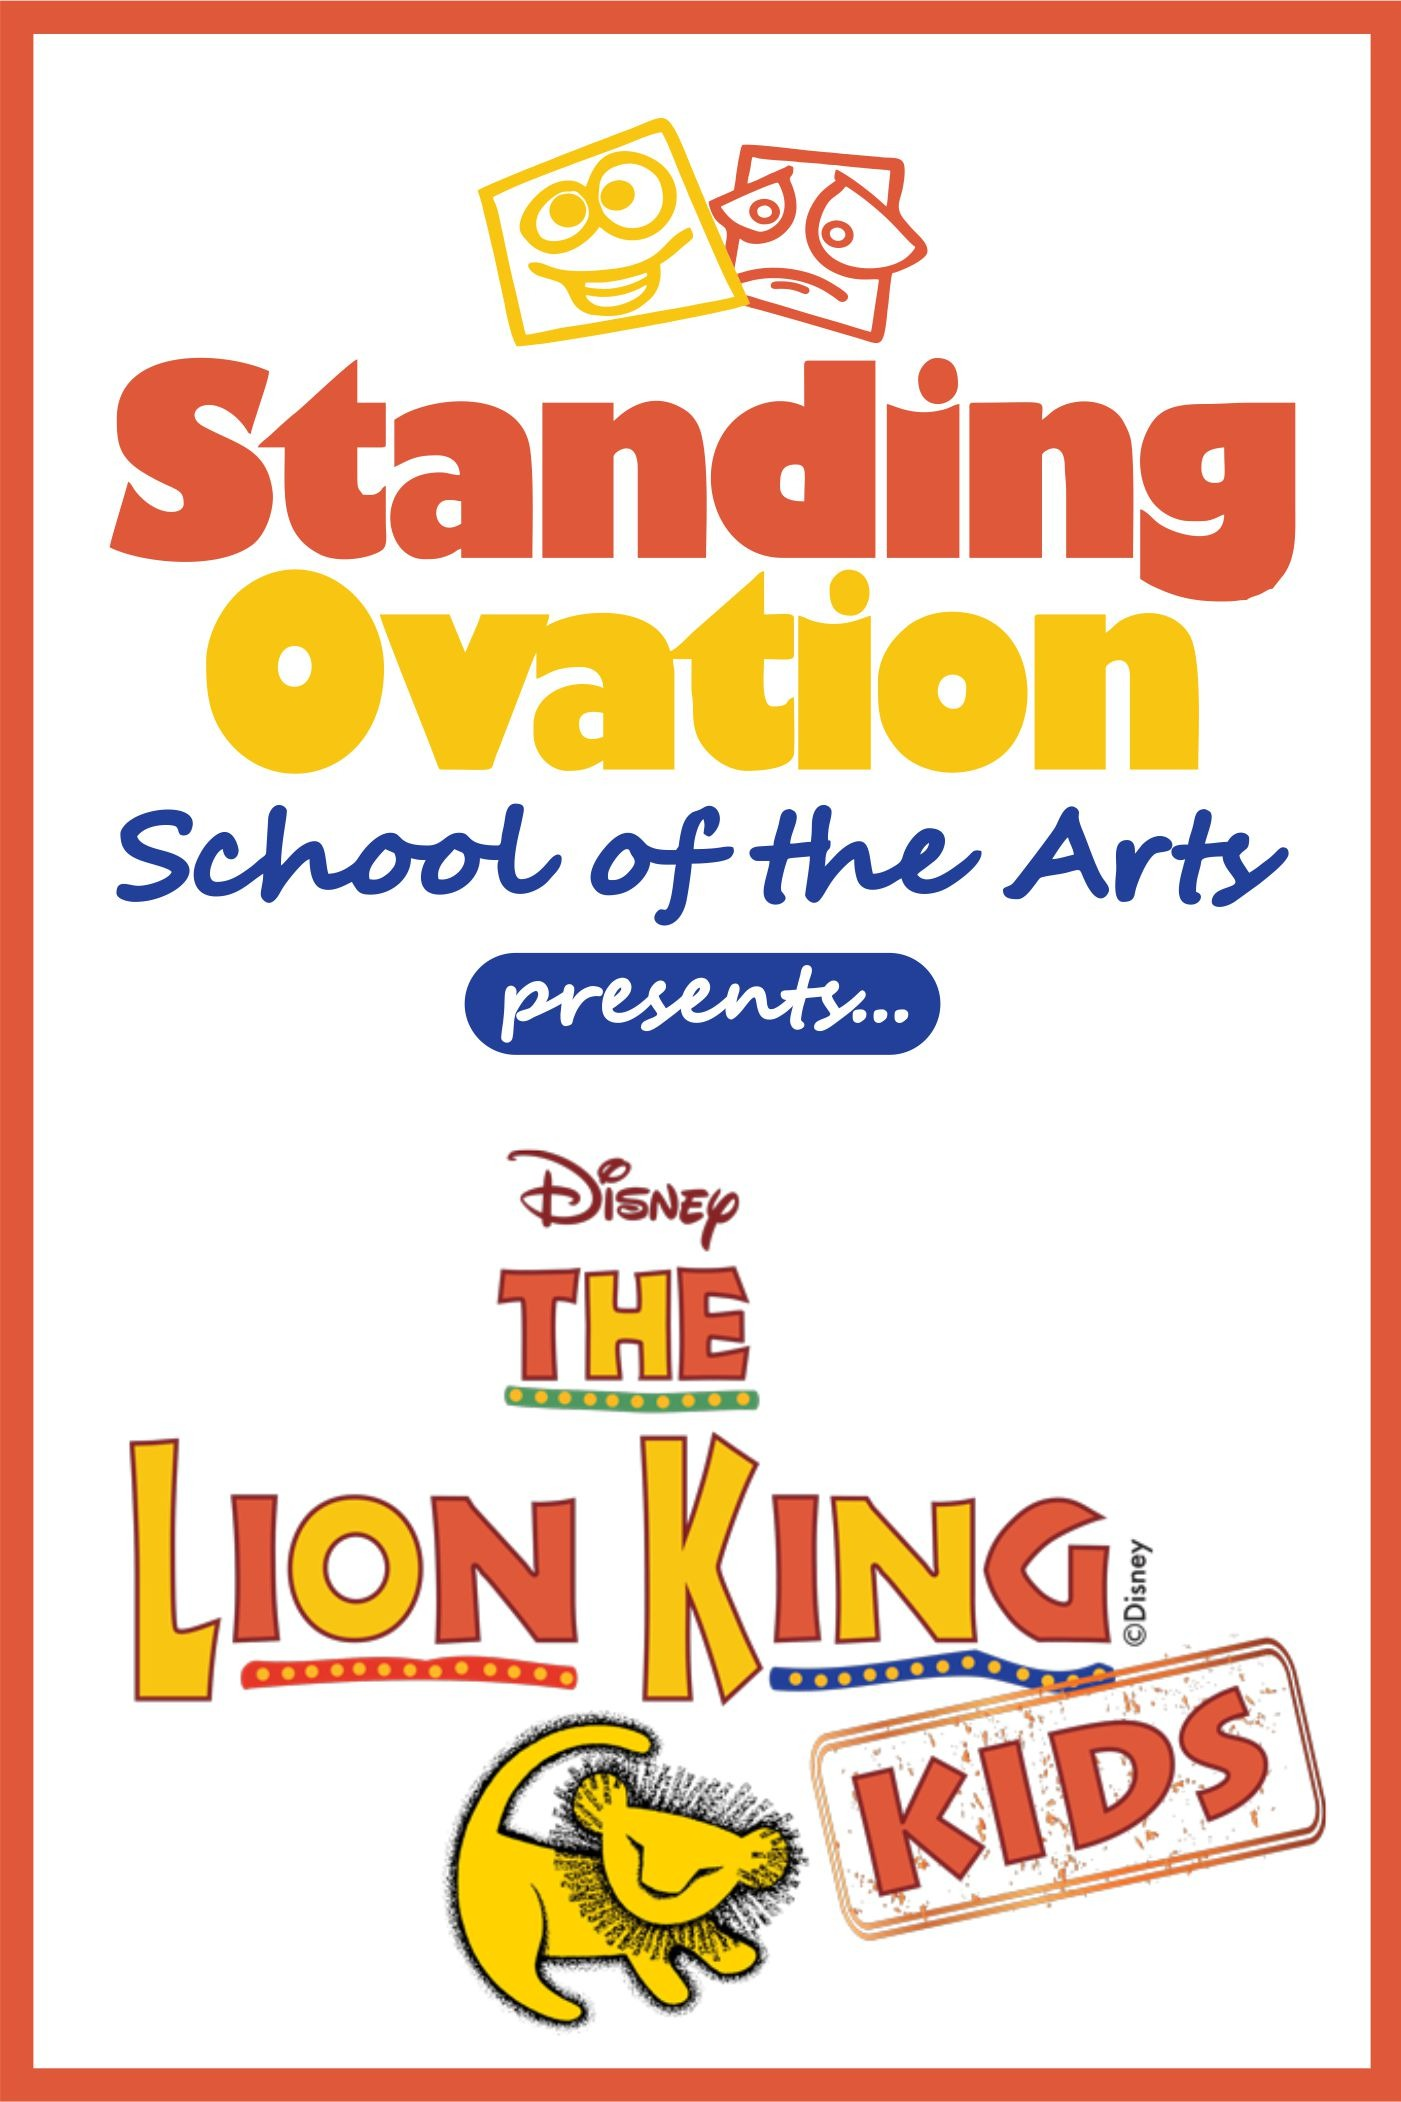 Standing Ovation School Of The Arts Presents Disneys The